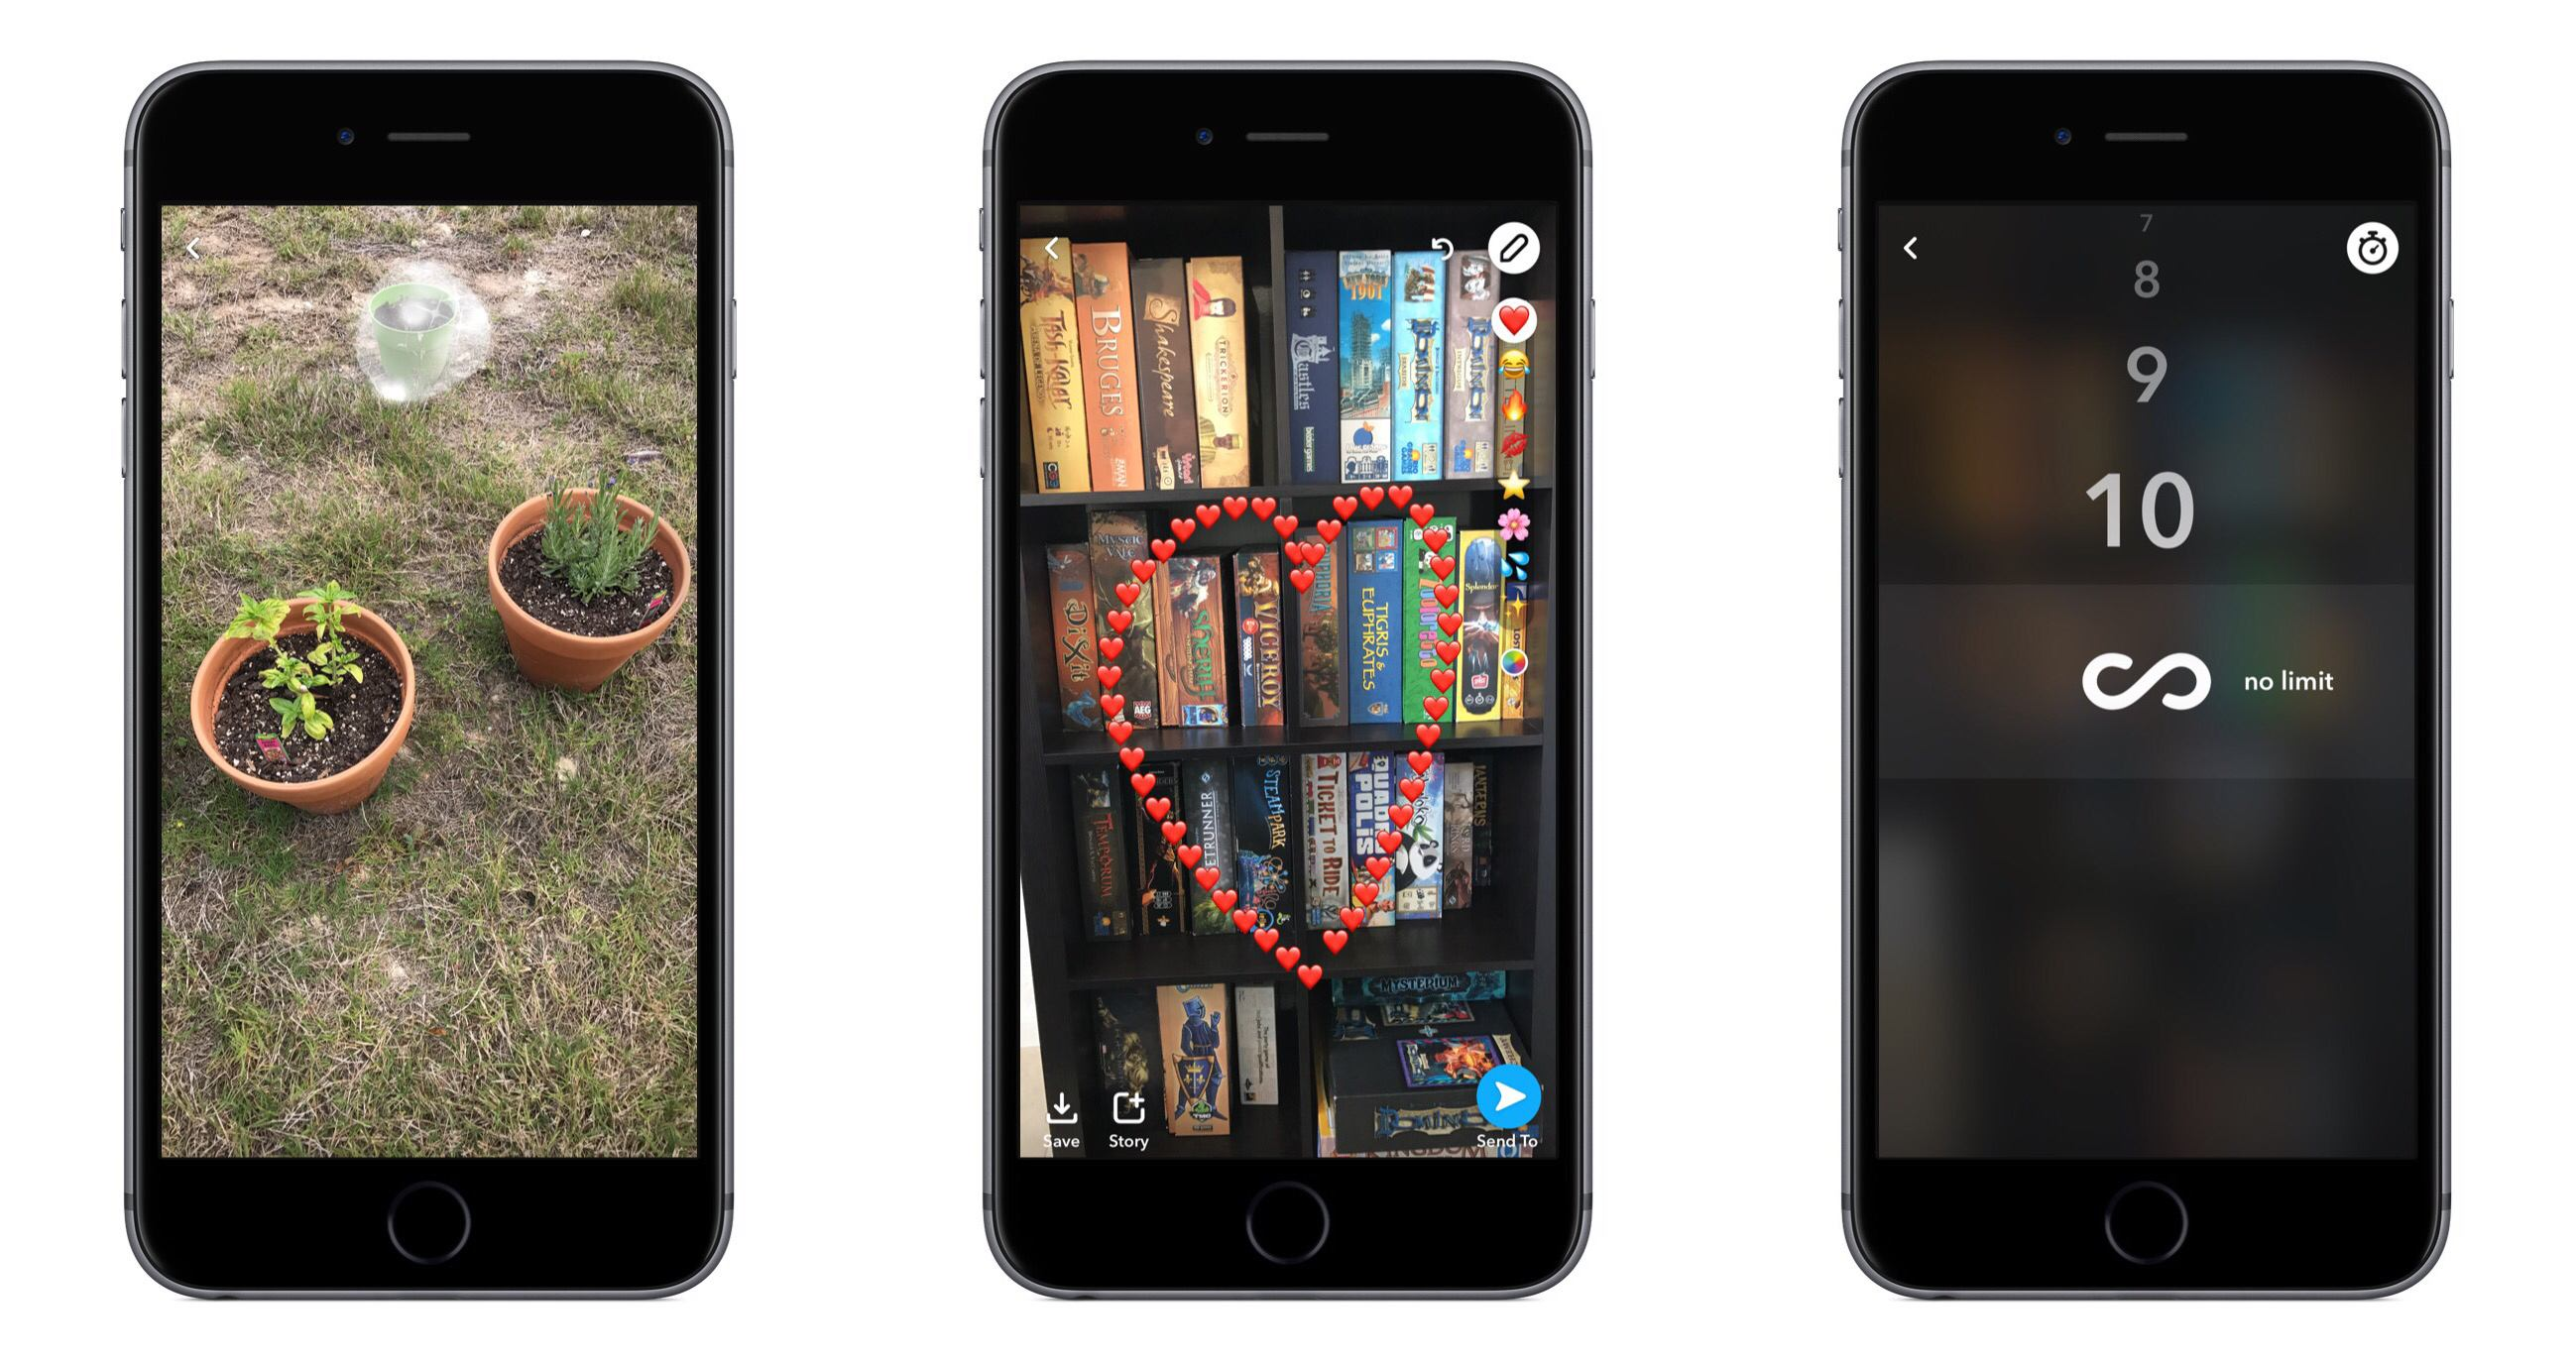 Snapchat update adds 'limitless snaps' and new creative tools